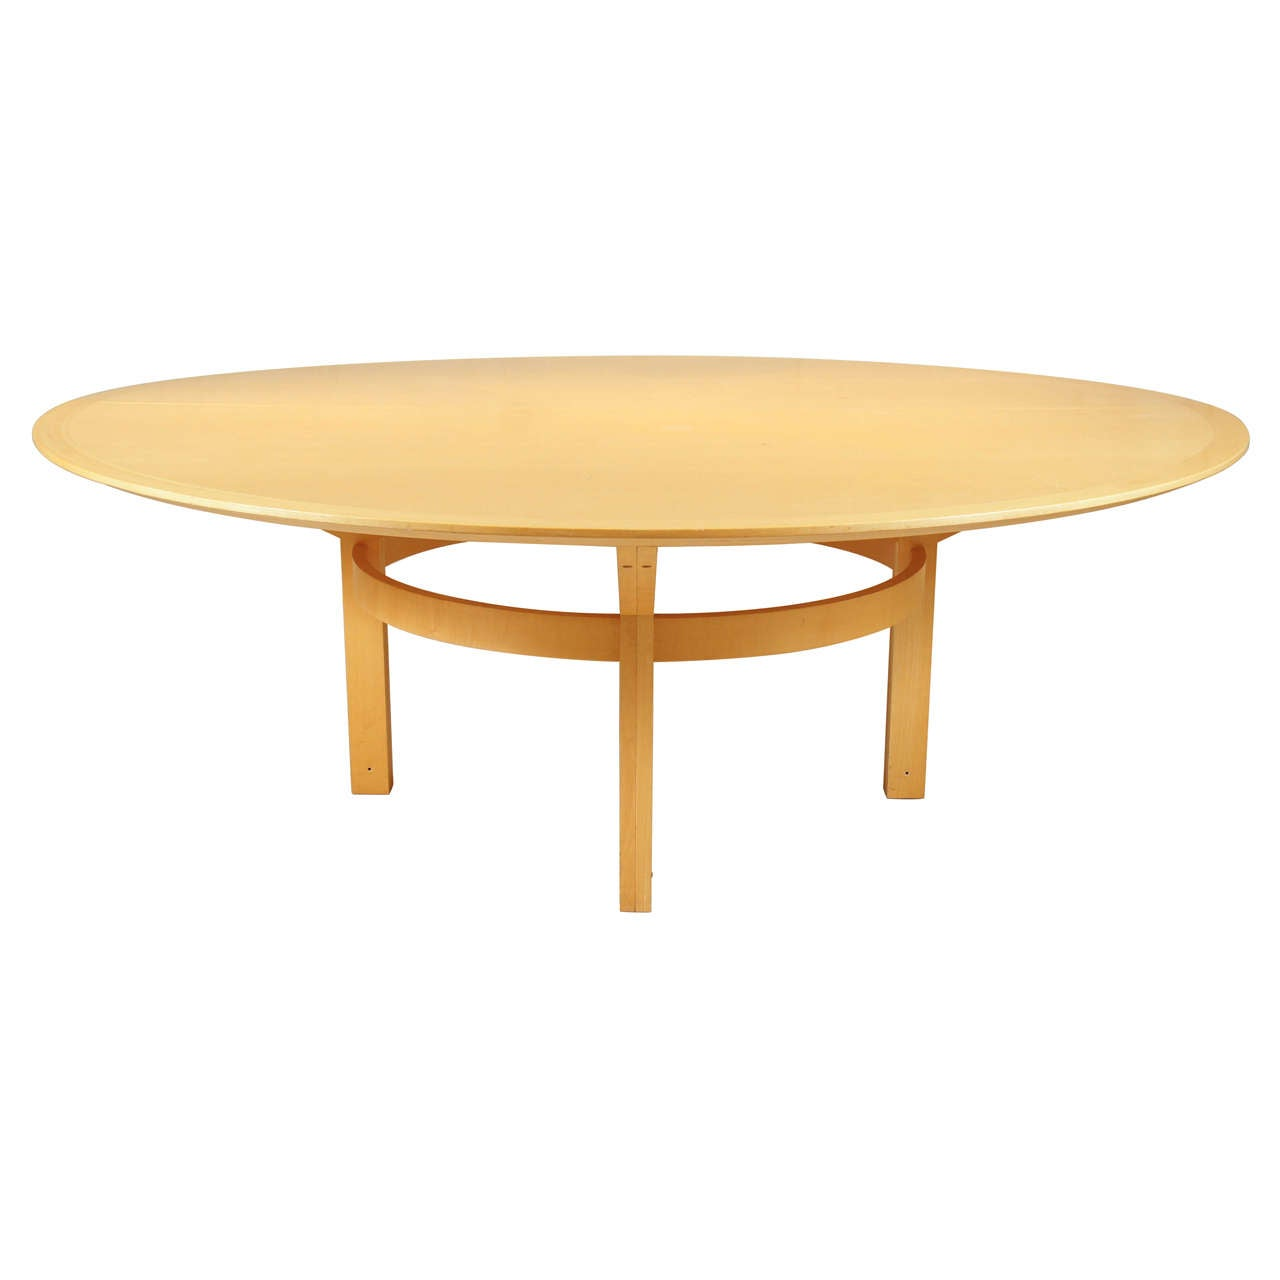 Large round dining table by rudd thygesen and johnny for Large round modern dining table